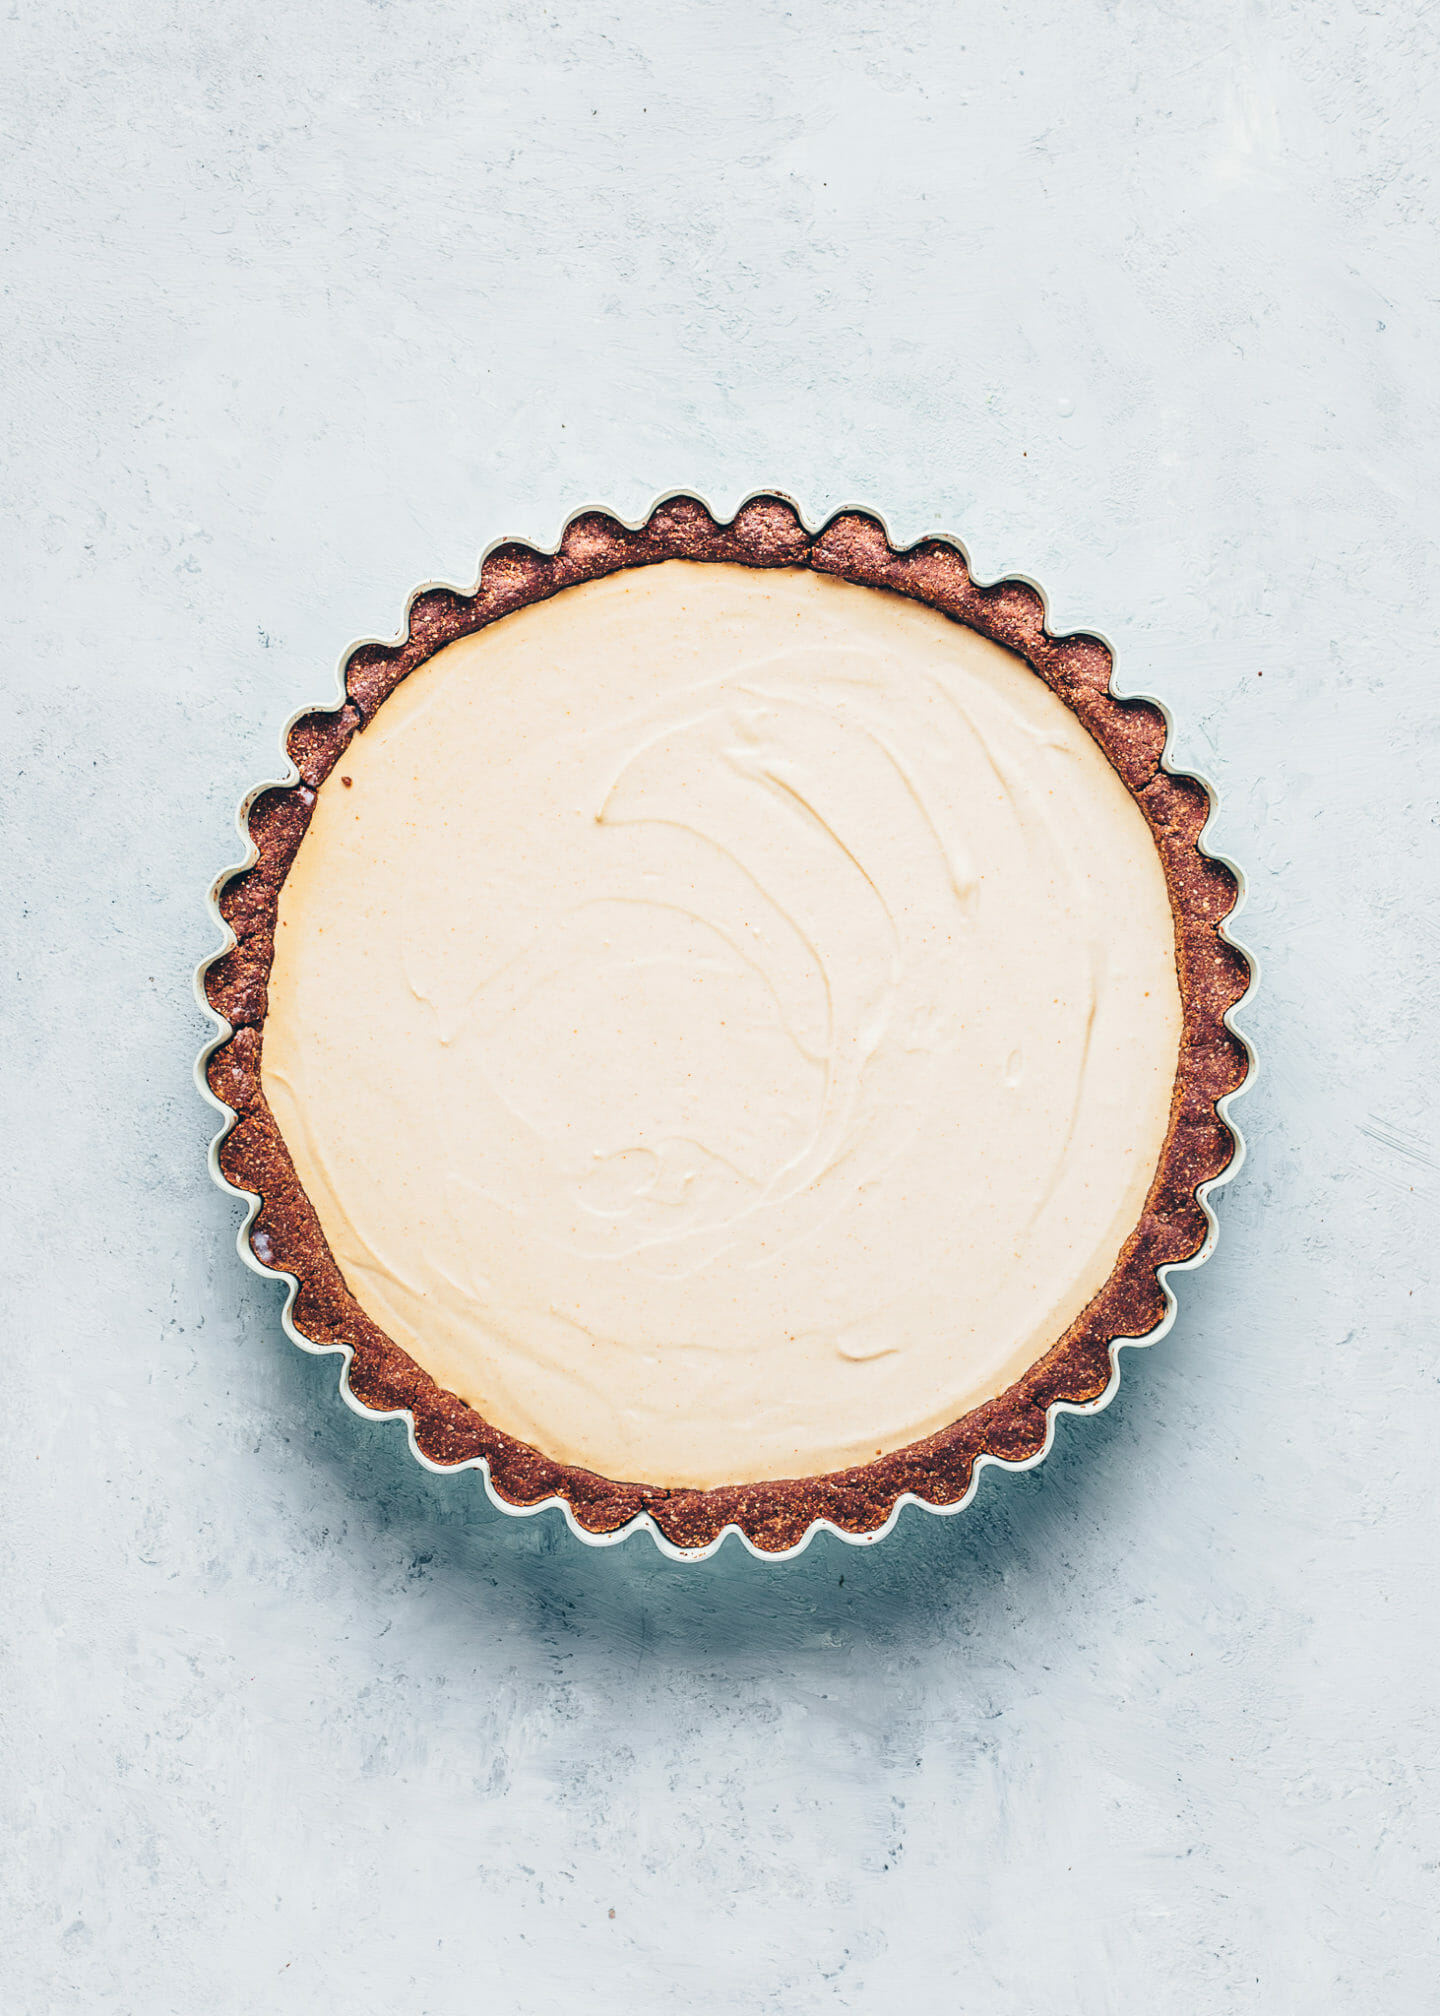 Peanut Butter Tart with Chocolate Pie Crust